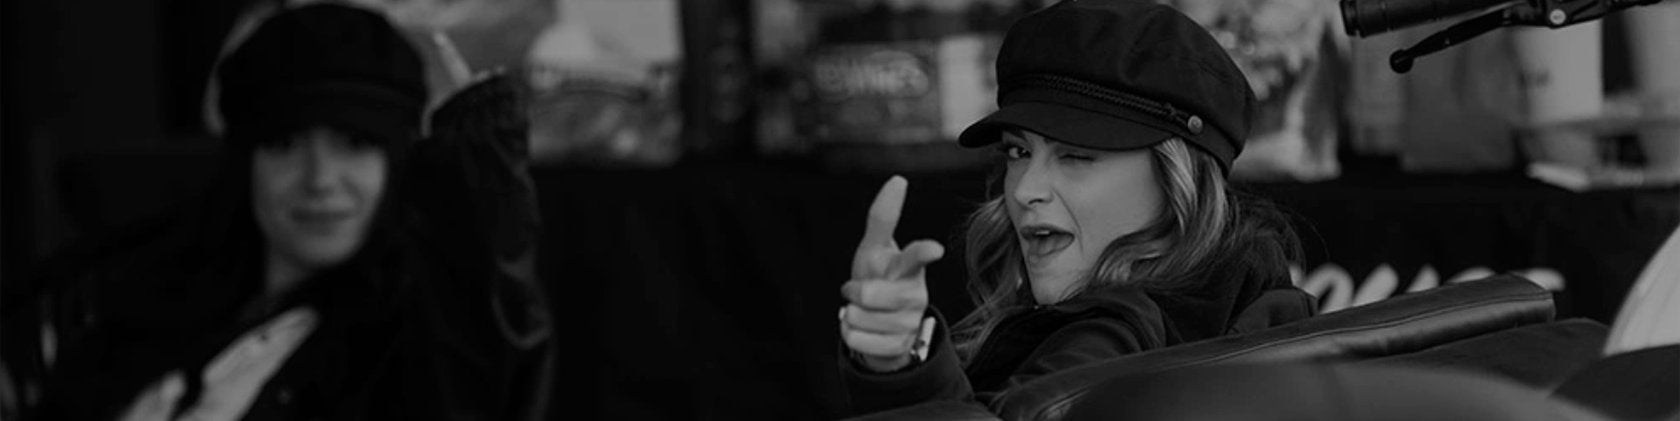 Casual - Donna